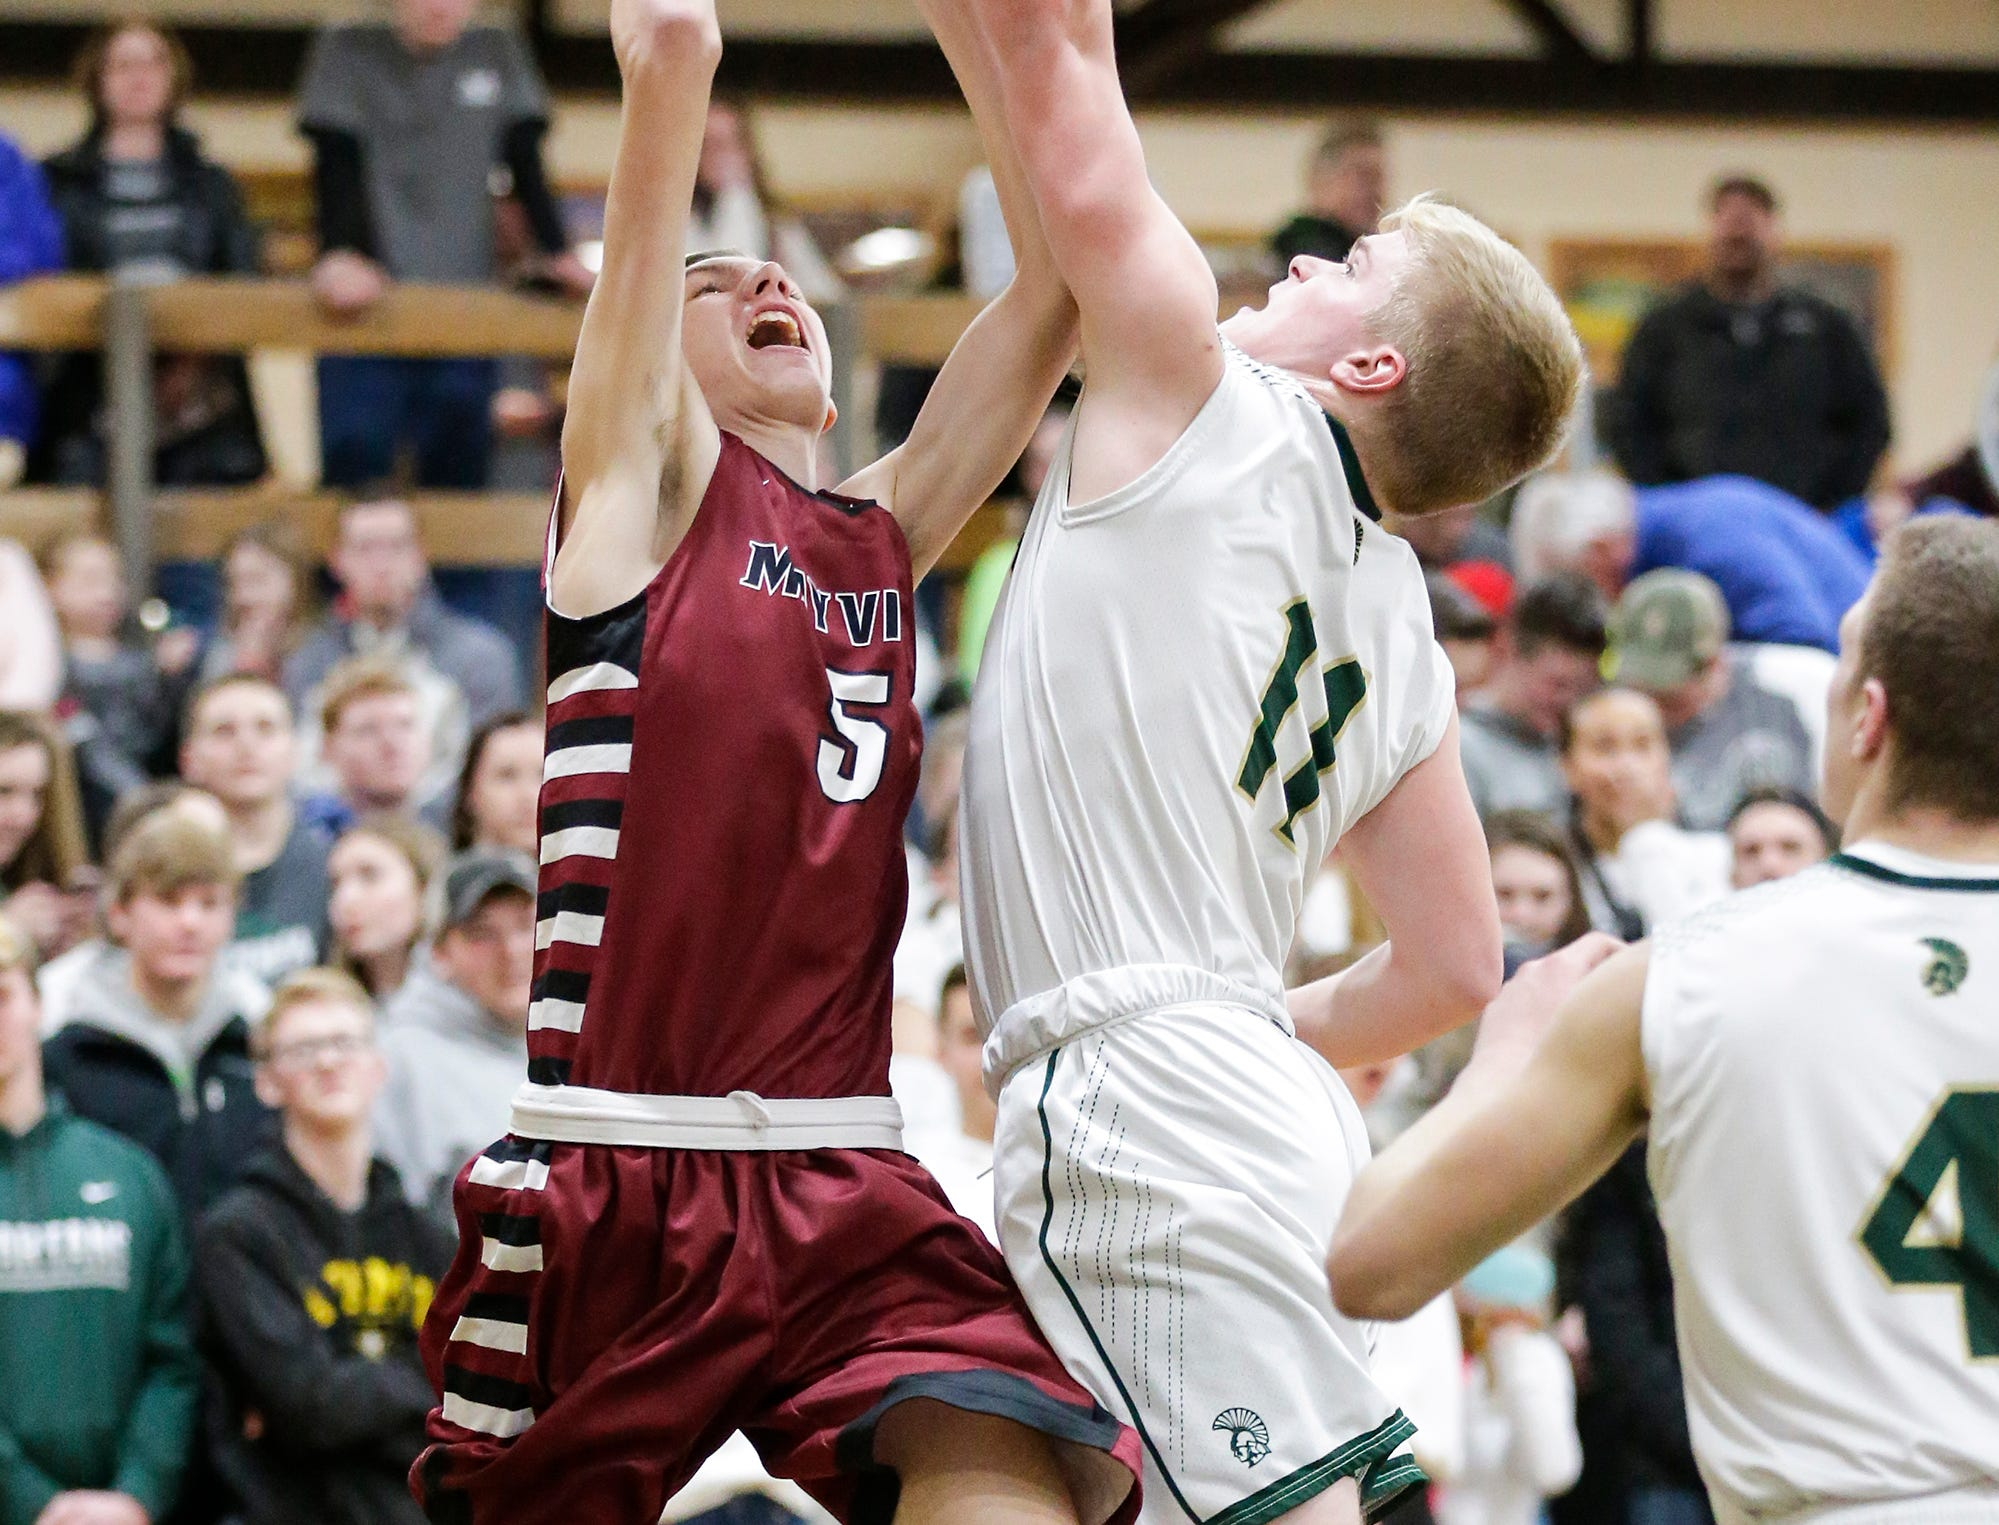 Mayville High School boys basketball's Isaac Wolf goes up for a shot against Laconia High School's Eli Leonard during their game Friday, January 25, 2019 in Rosendale. Laconia won the game 80-54. Doug Raflik/USA TODAY NETWORK-Wisconsin